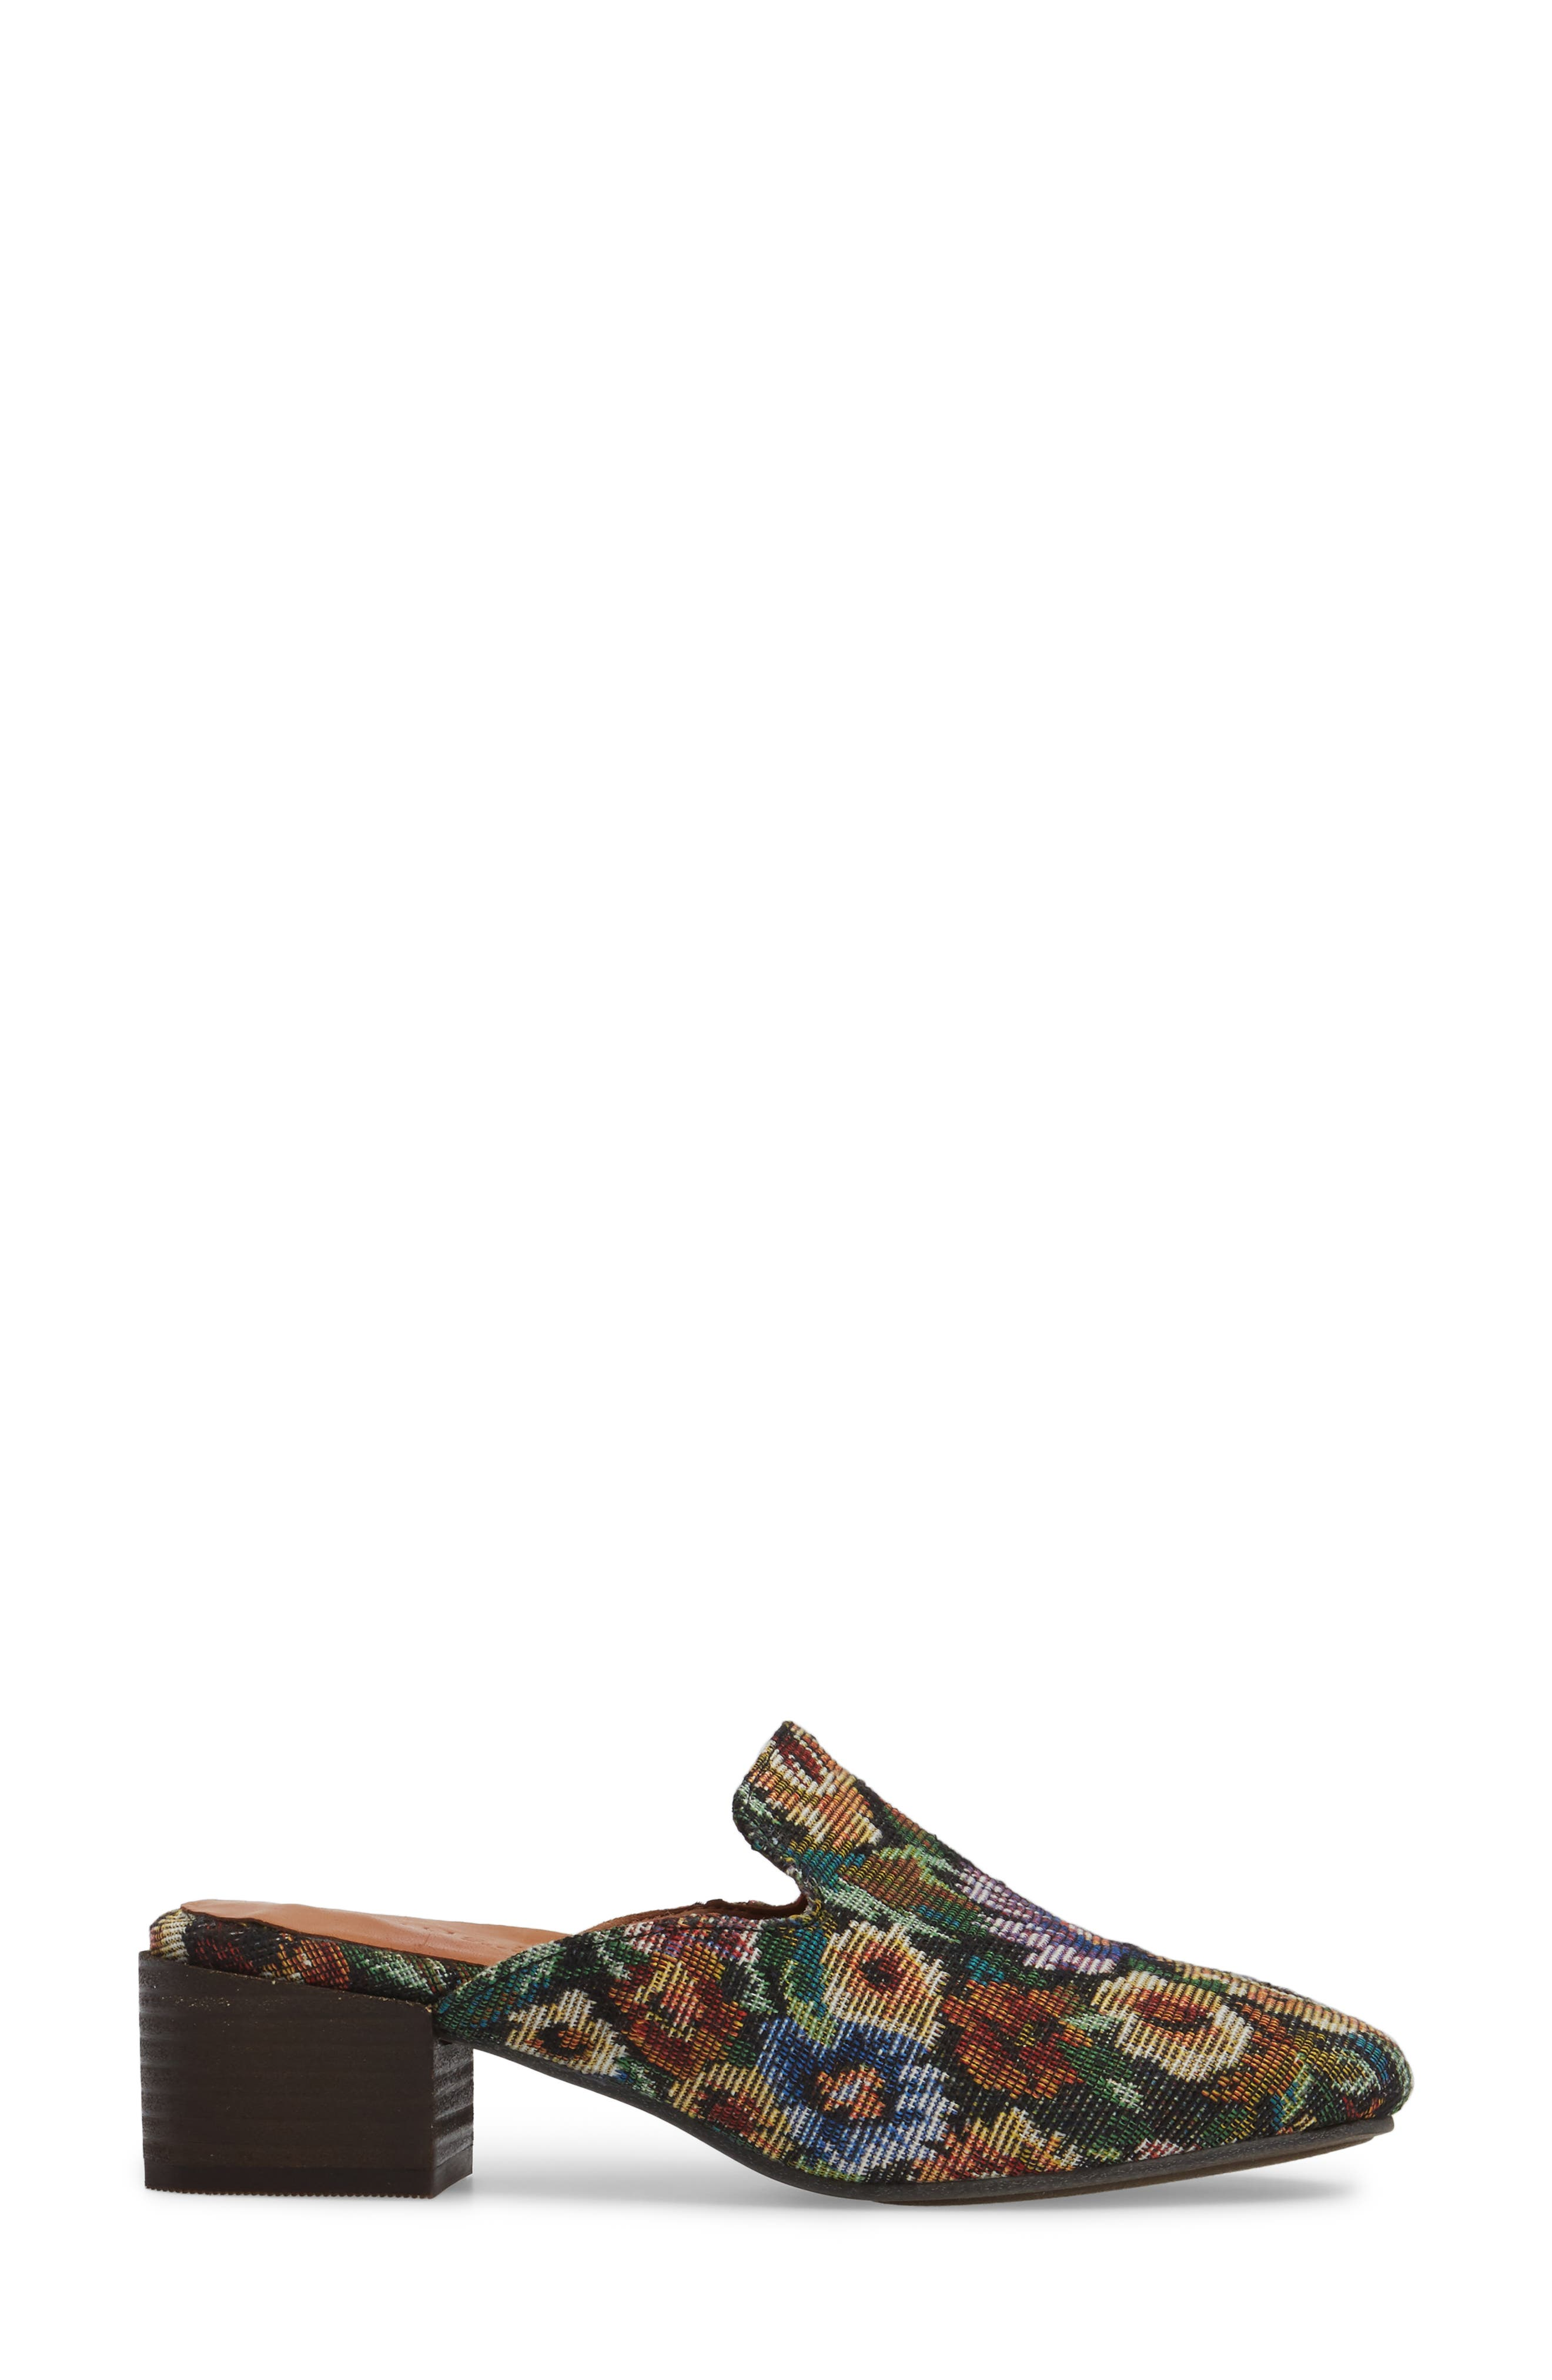 Eida Loafer Mule,                             Alternate thumbnail 3, color,                             Floral Fabric